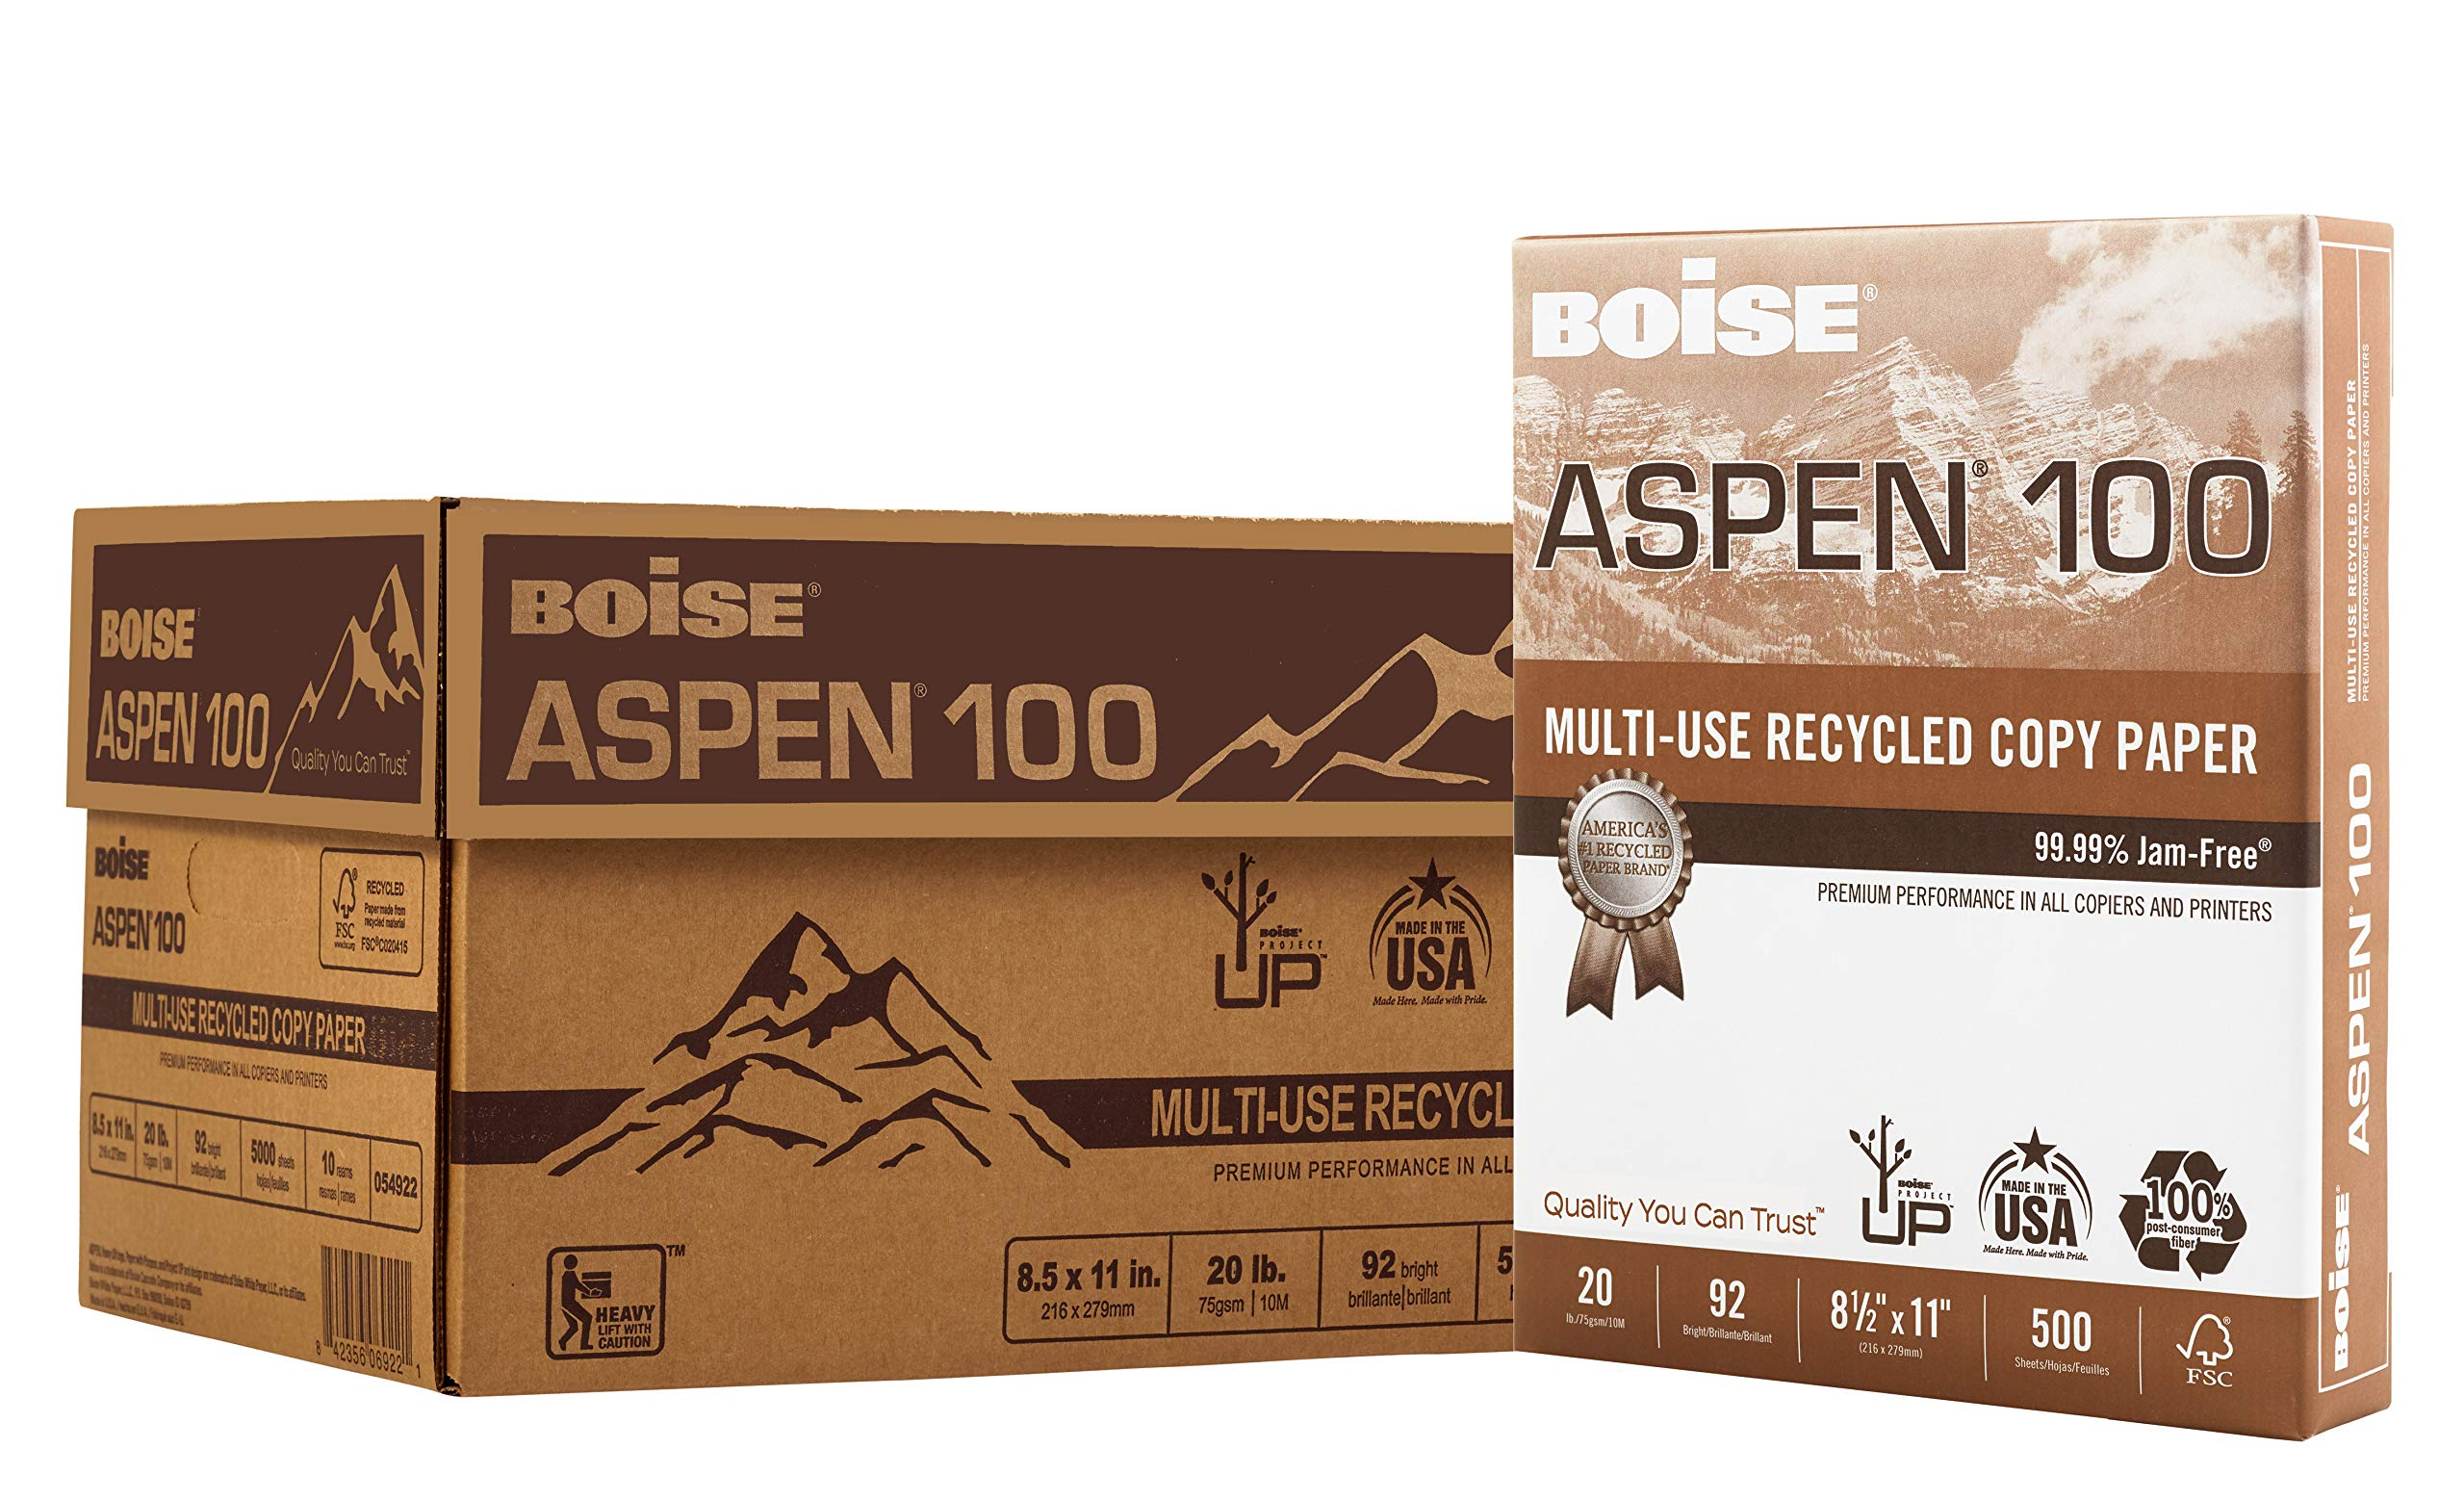 BOISE ASPEN 100% Recycled Multi-Use Copy Paper, 8.5'' x 11'', Letter, 92 Bright, 20 lb, 10 Ream Carton (5,000 Sheets) by Boise Paper